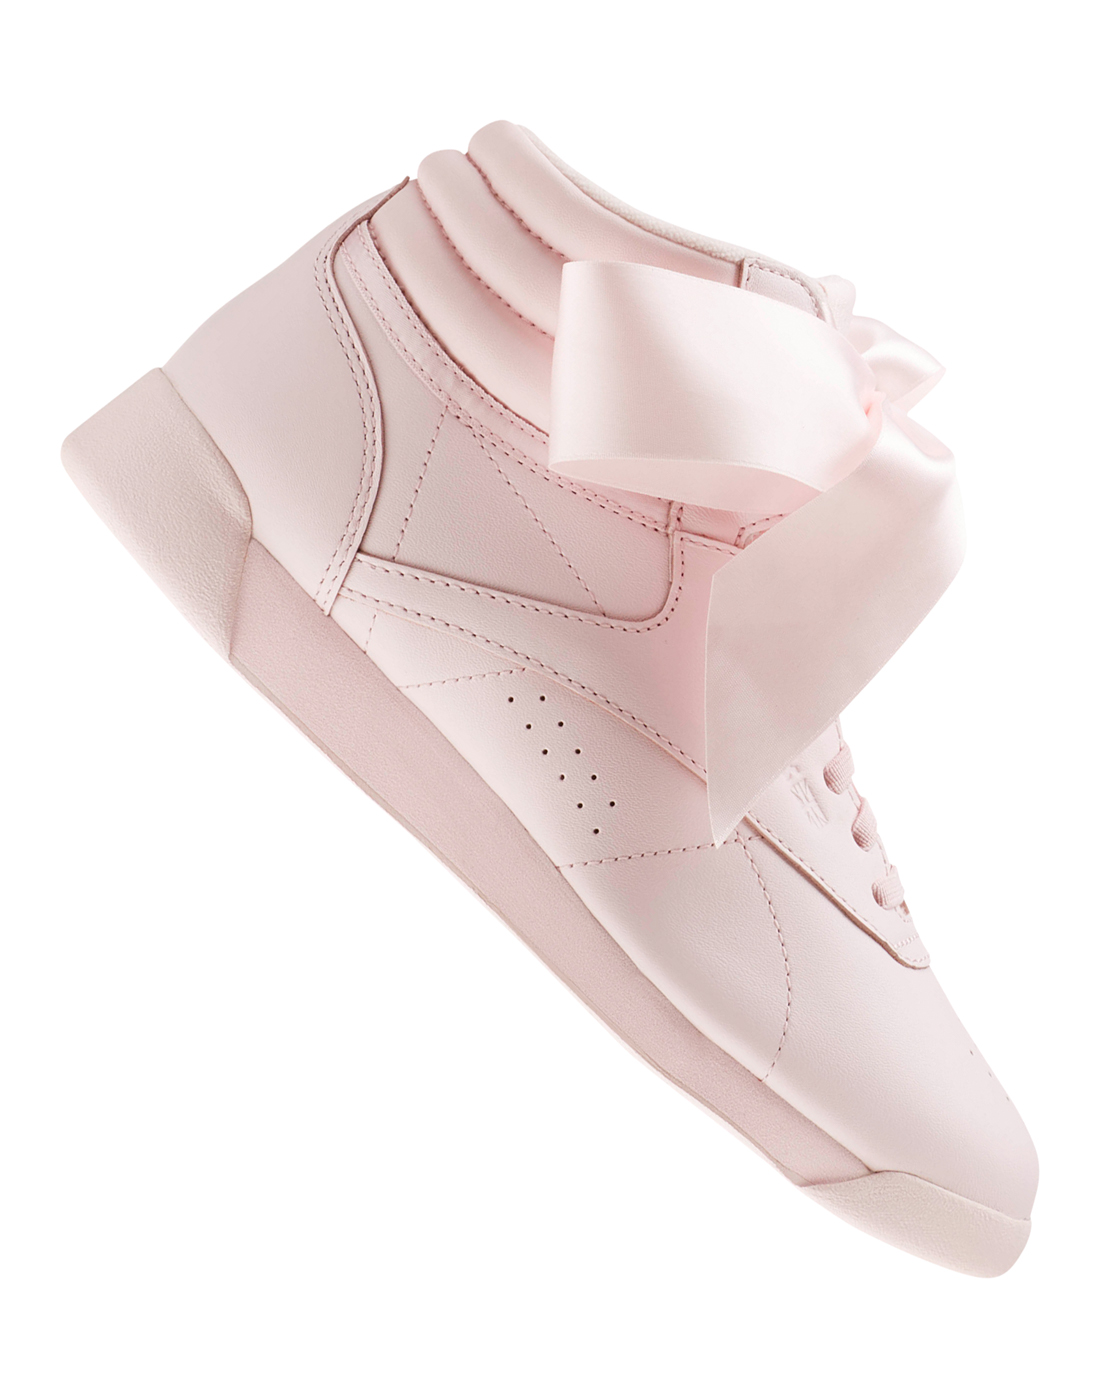 35200c81b95 Reebok Womens Freestyle Hi Satin Bow